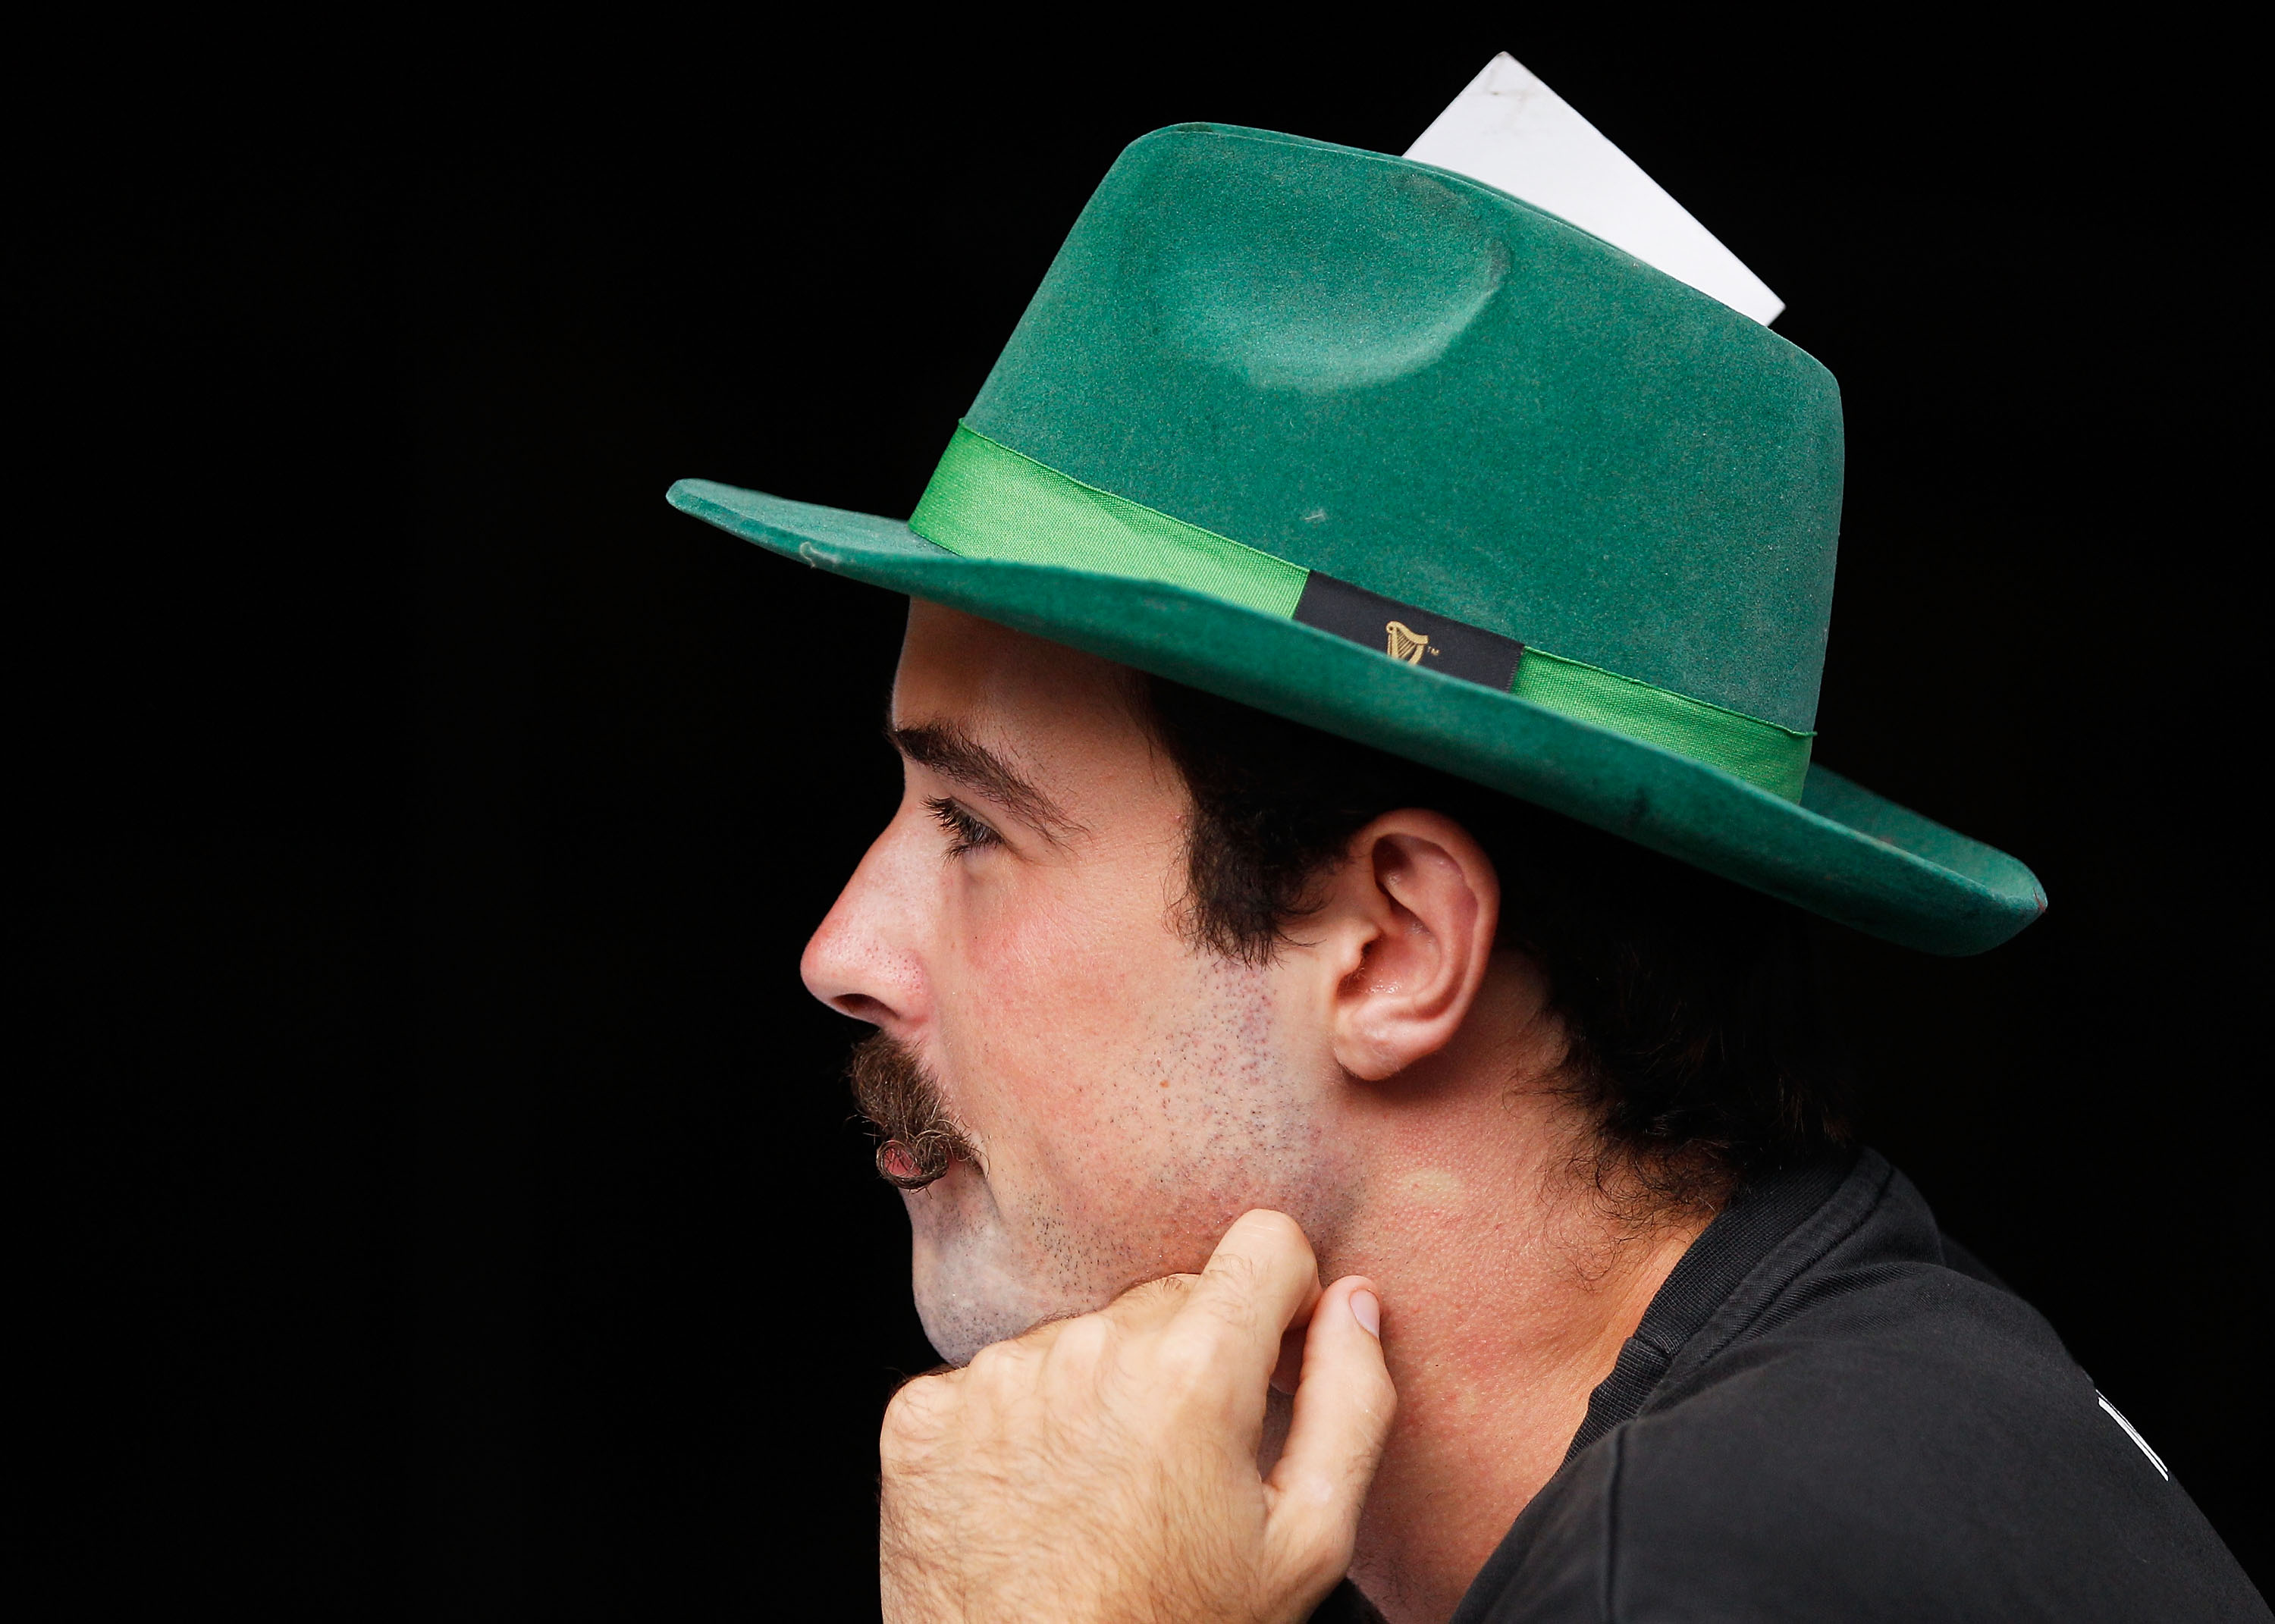 XXXXXXXXX on March 17, 2016 in Sydney, Australia. March 17th commemorates Saint Patrick and the arrival of Christianity in Ireland, as well as celebrating Irish heritage and culture.